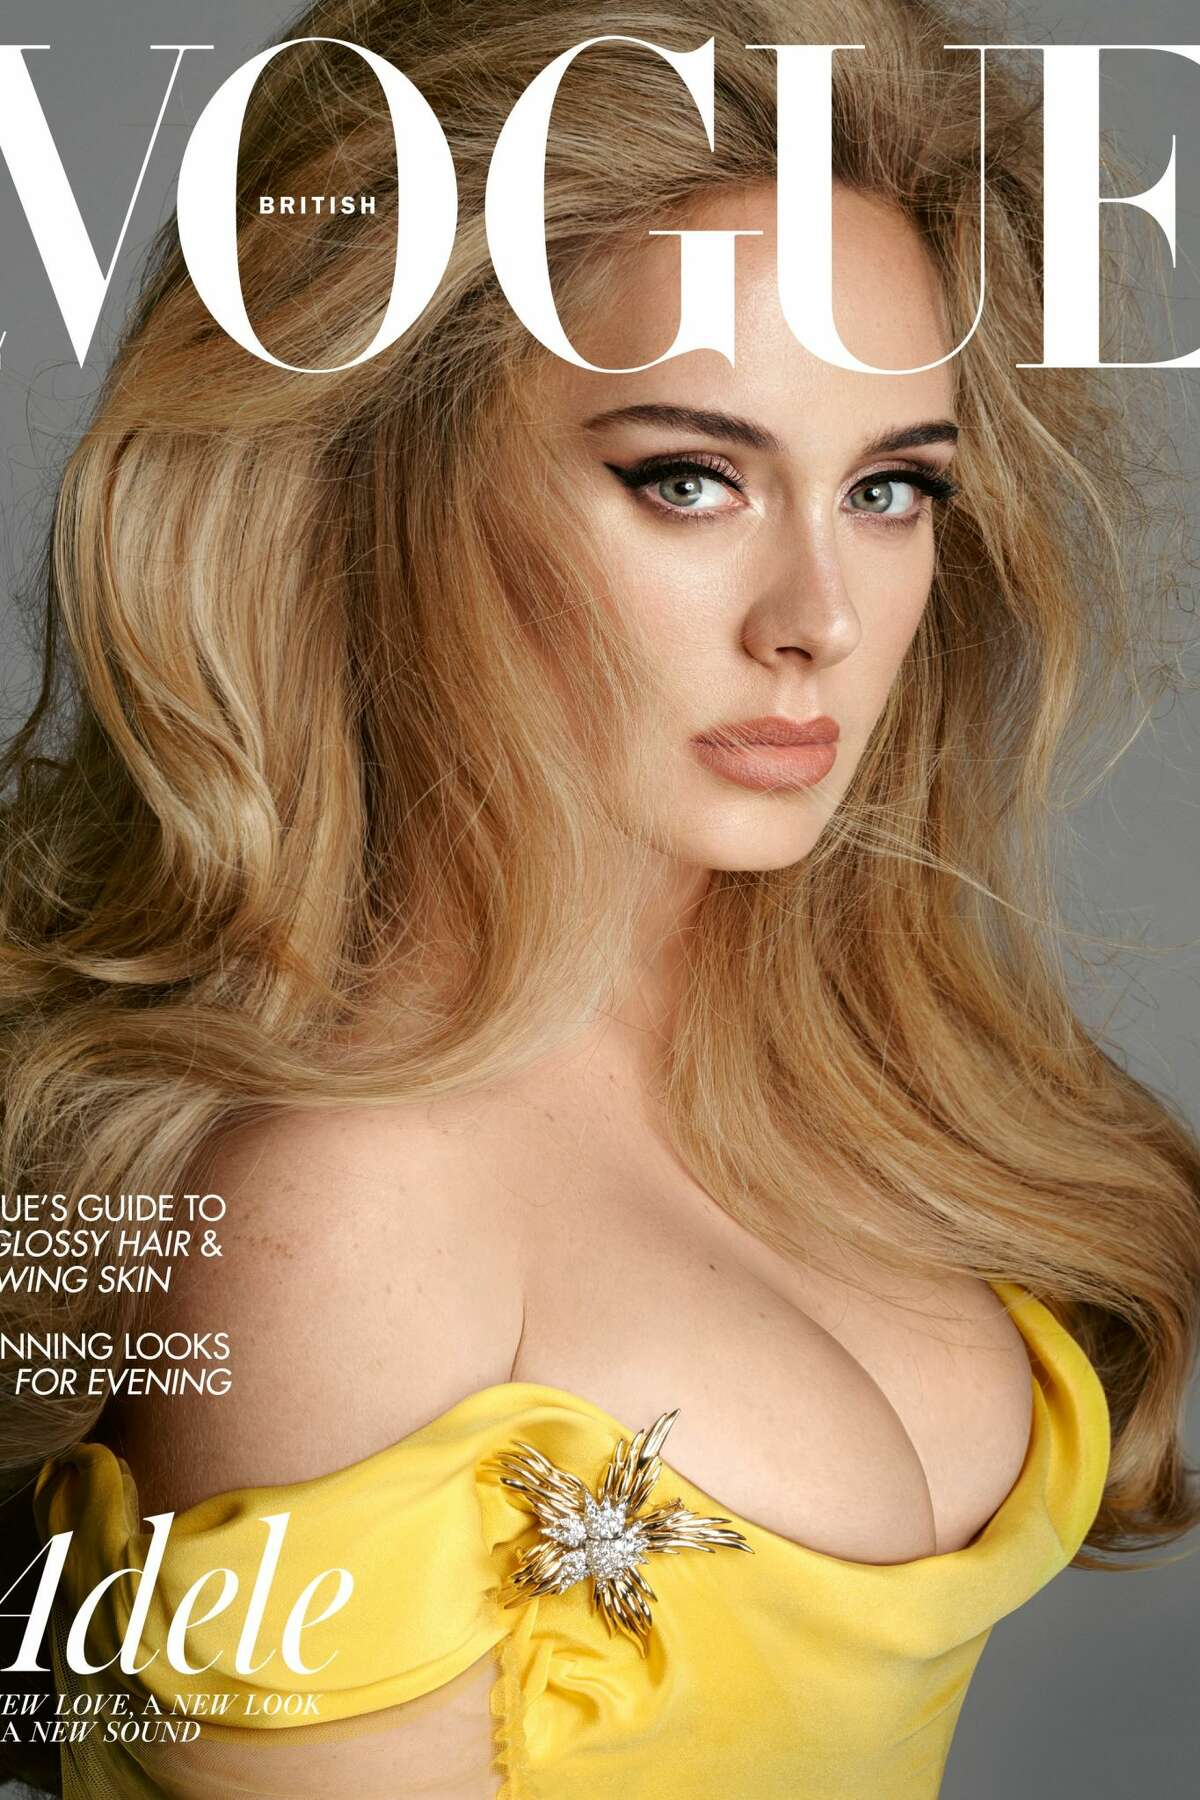 Adele appears on the cover of British Vogue's November 2021 issue.